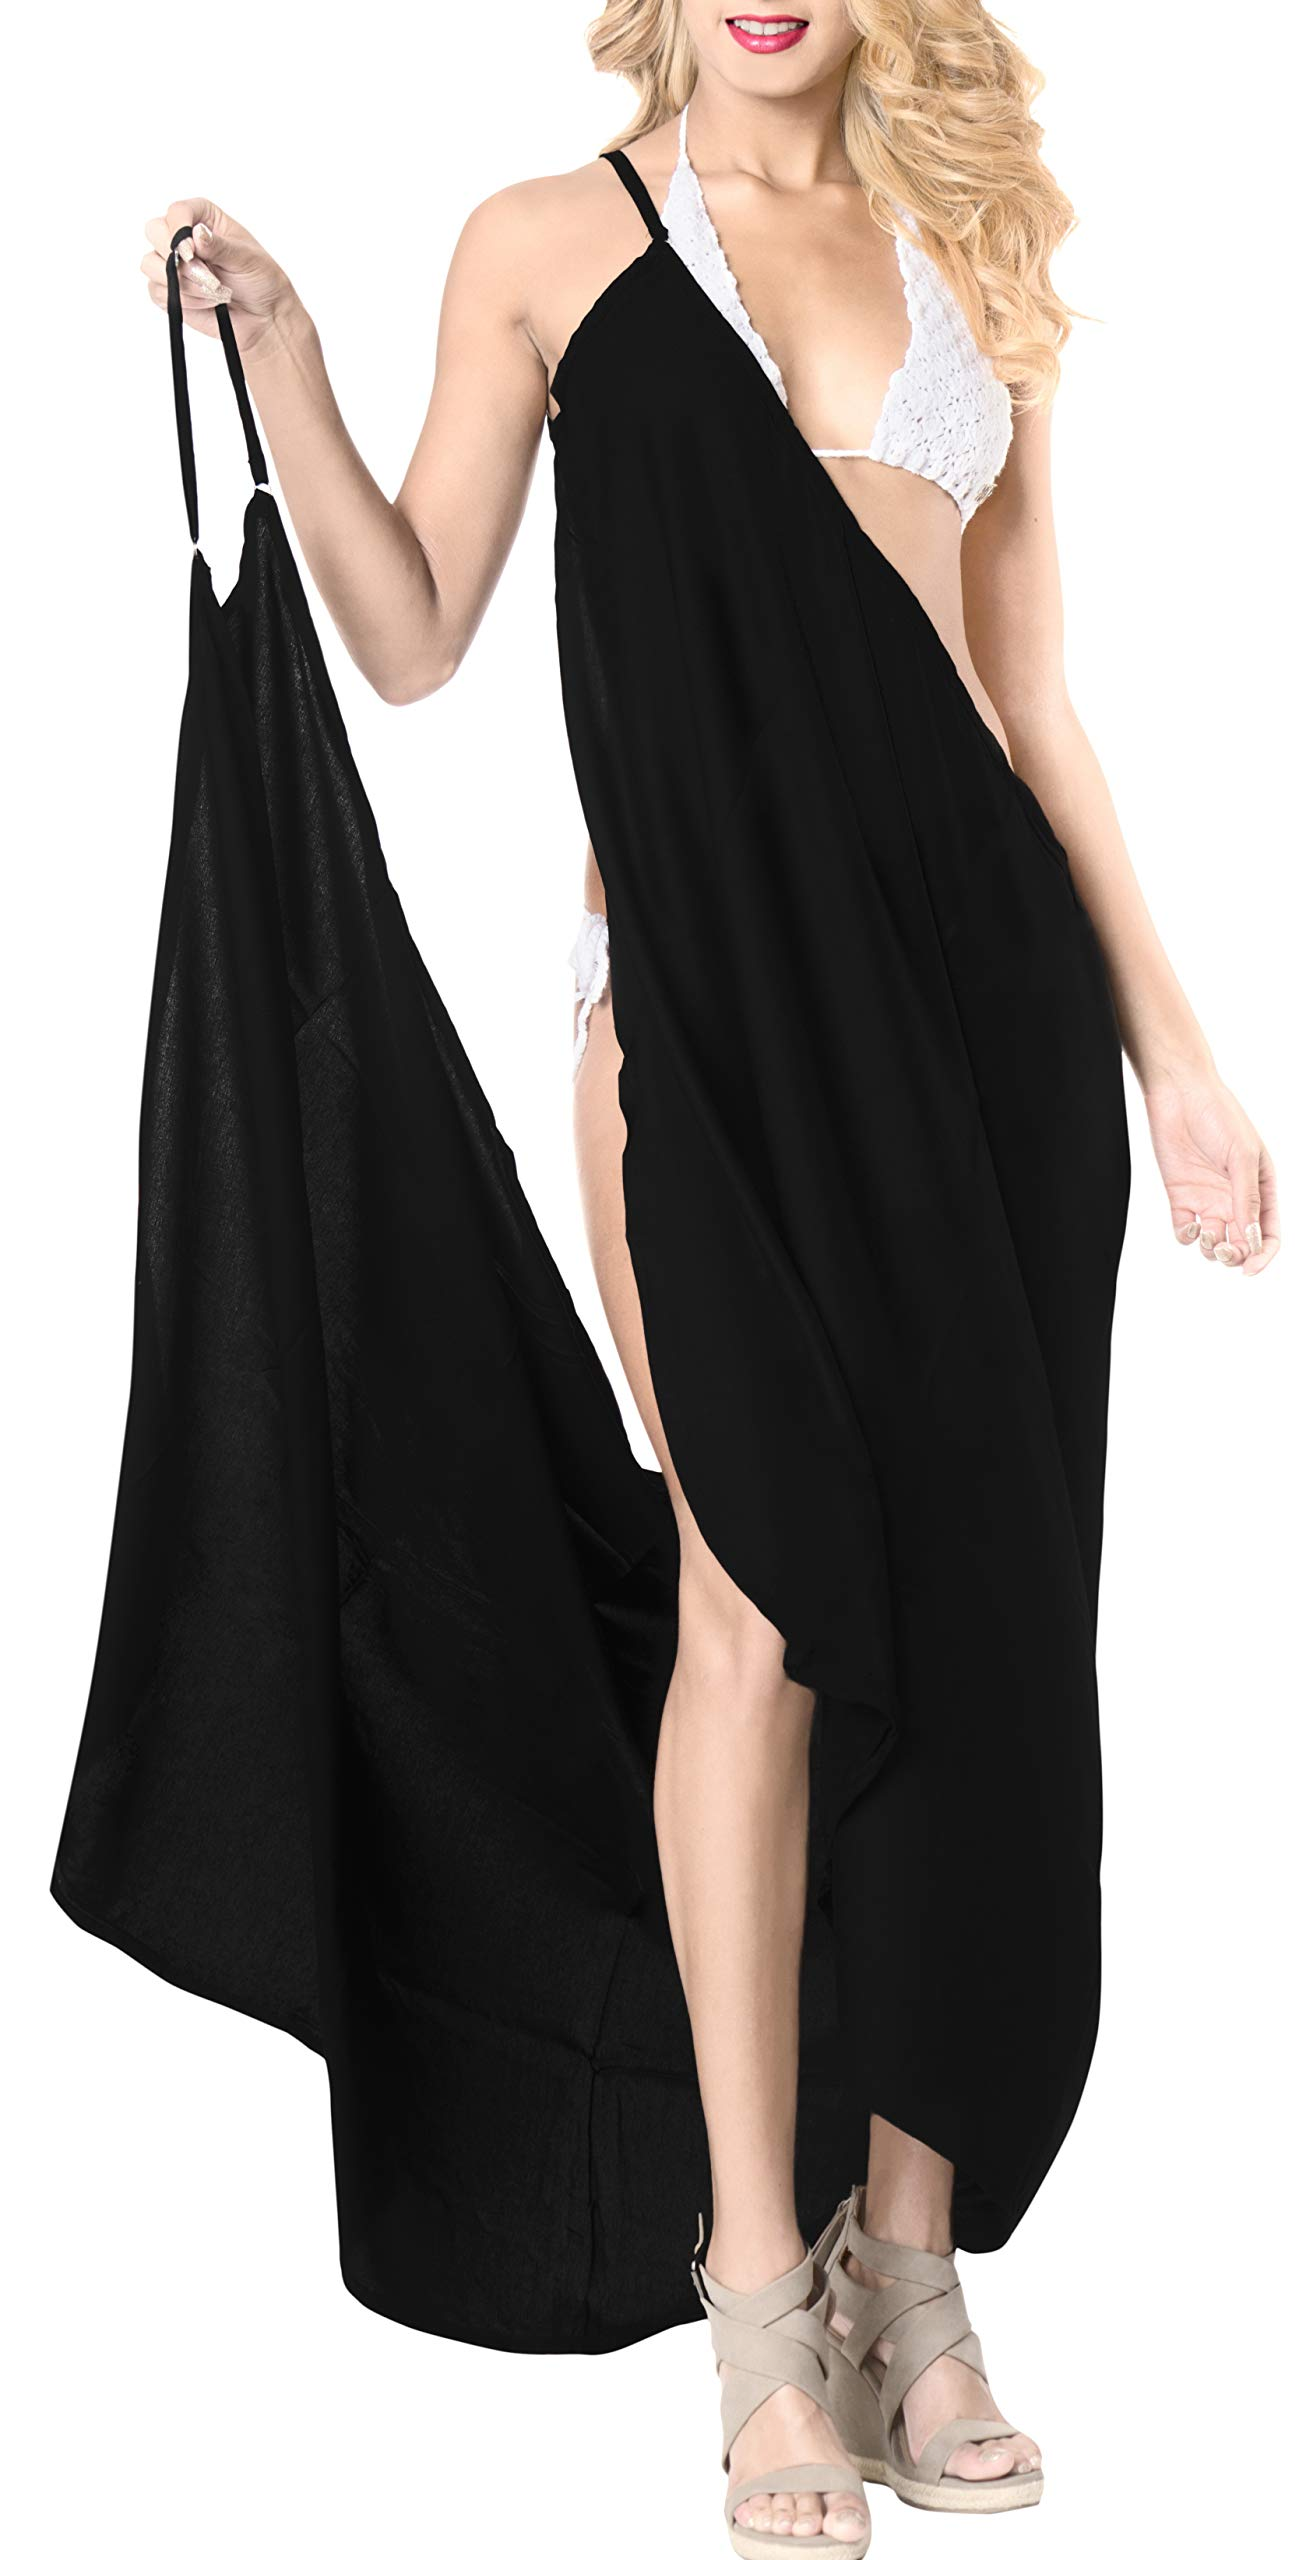 LA LEELA Rayon Women's Swimsuit Cover Up Tie Sarong Solid 70''X34'' Black_7179